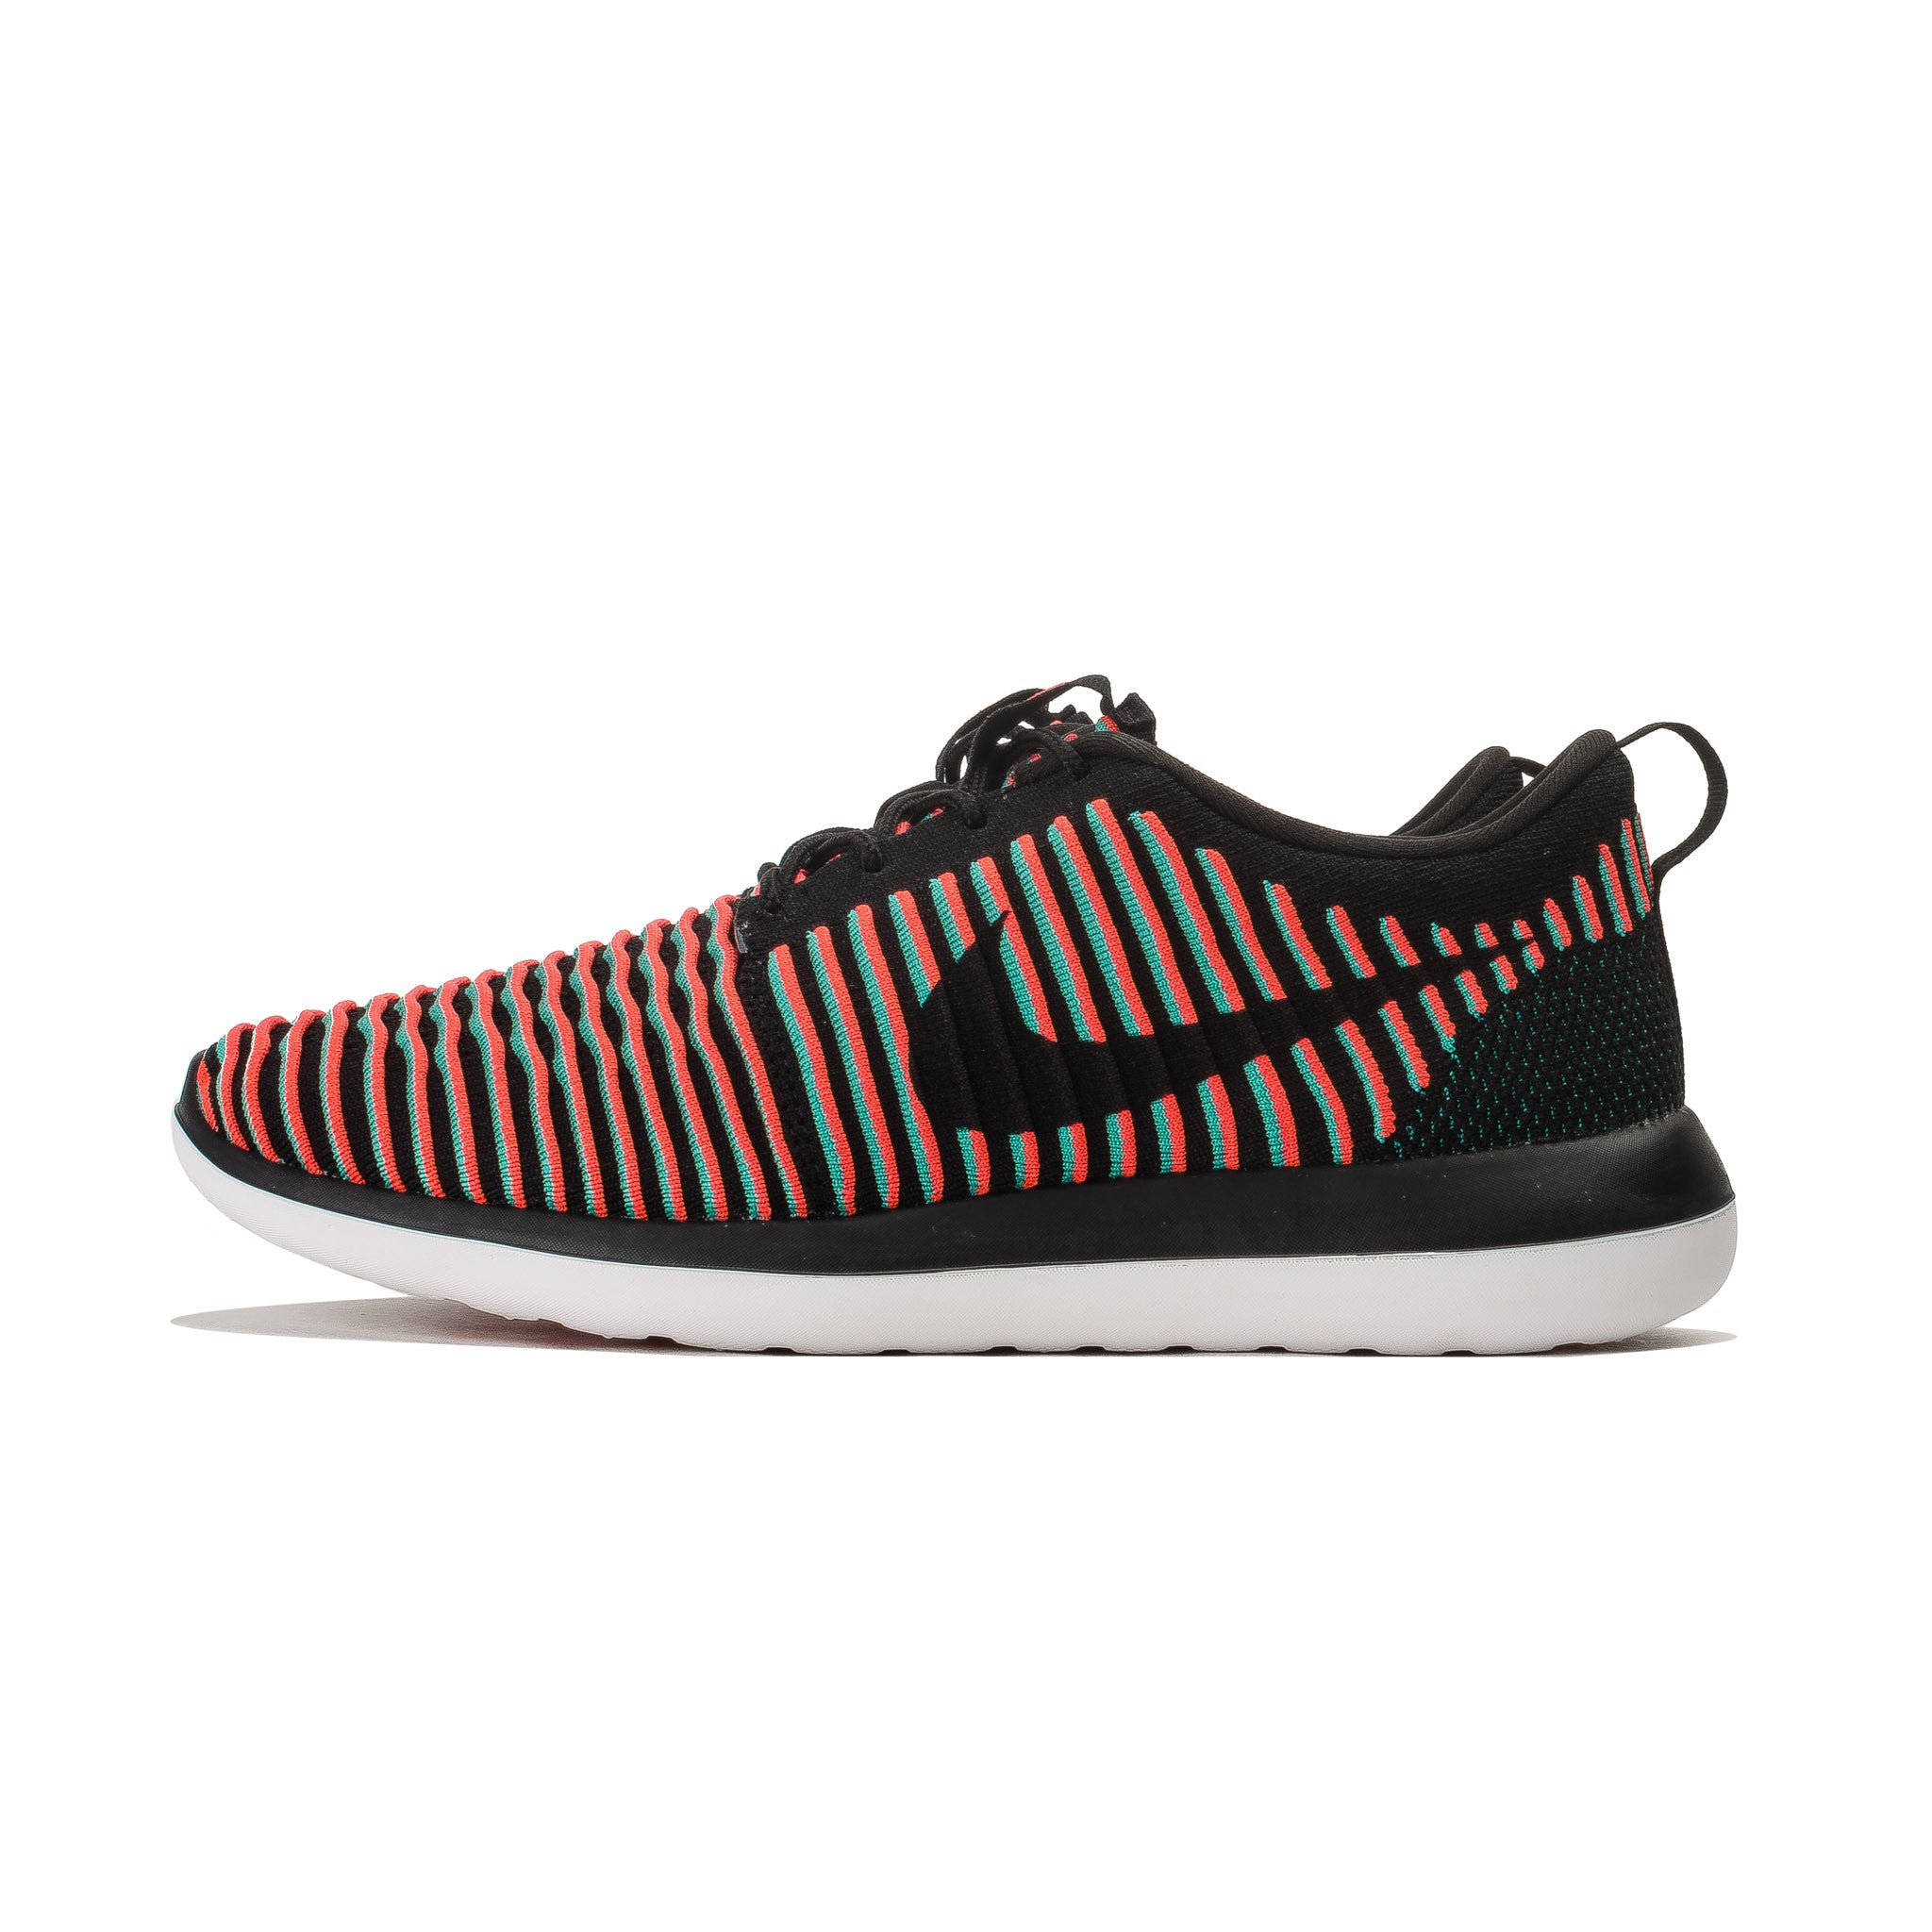 Nike Roshe Two Flyknit 844833-003 Black